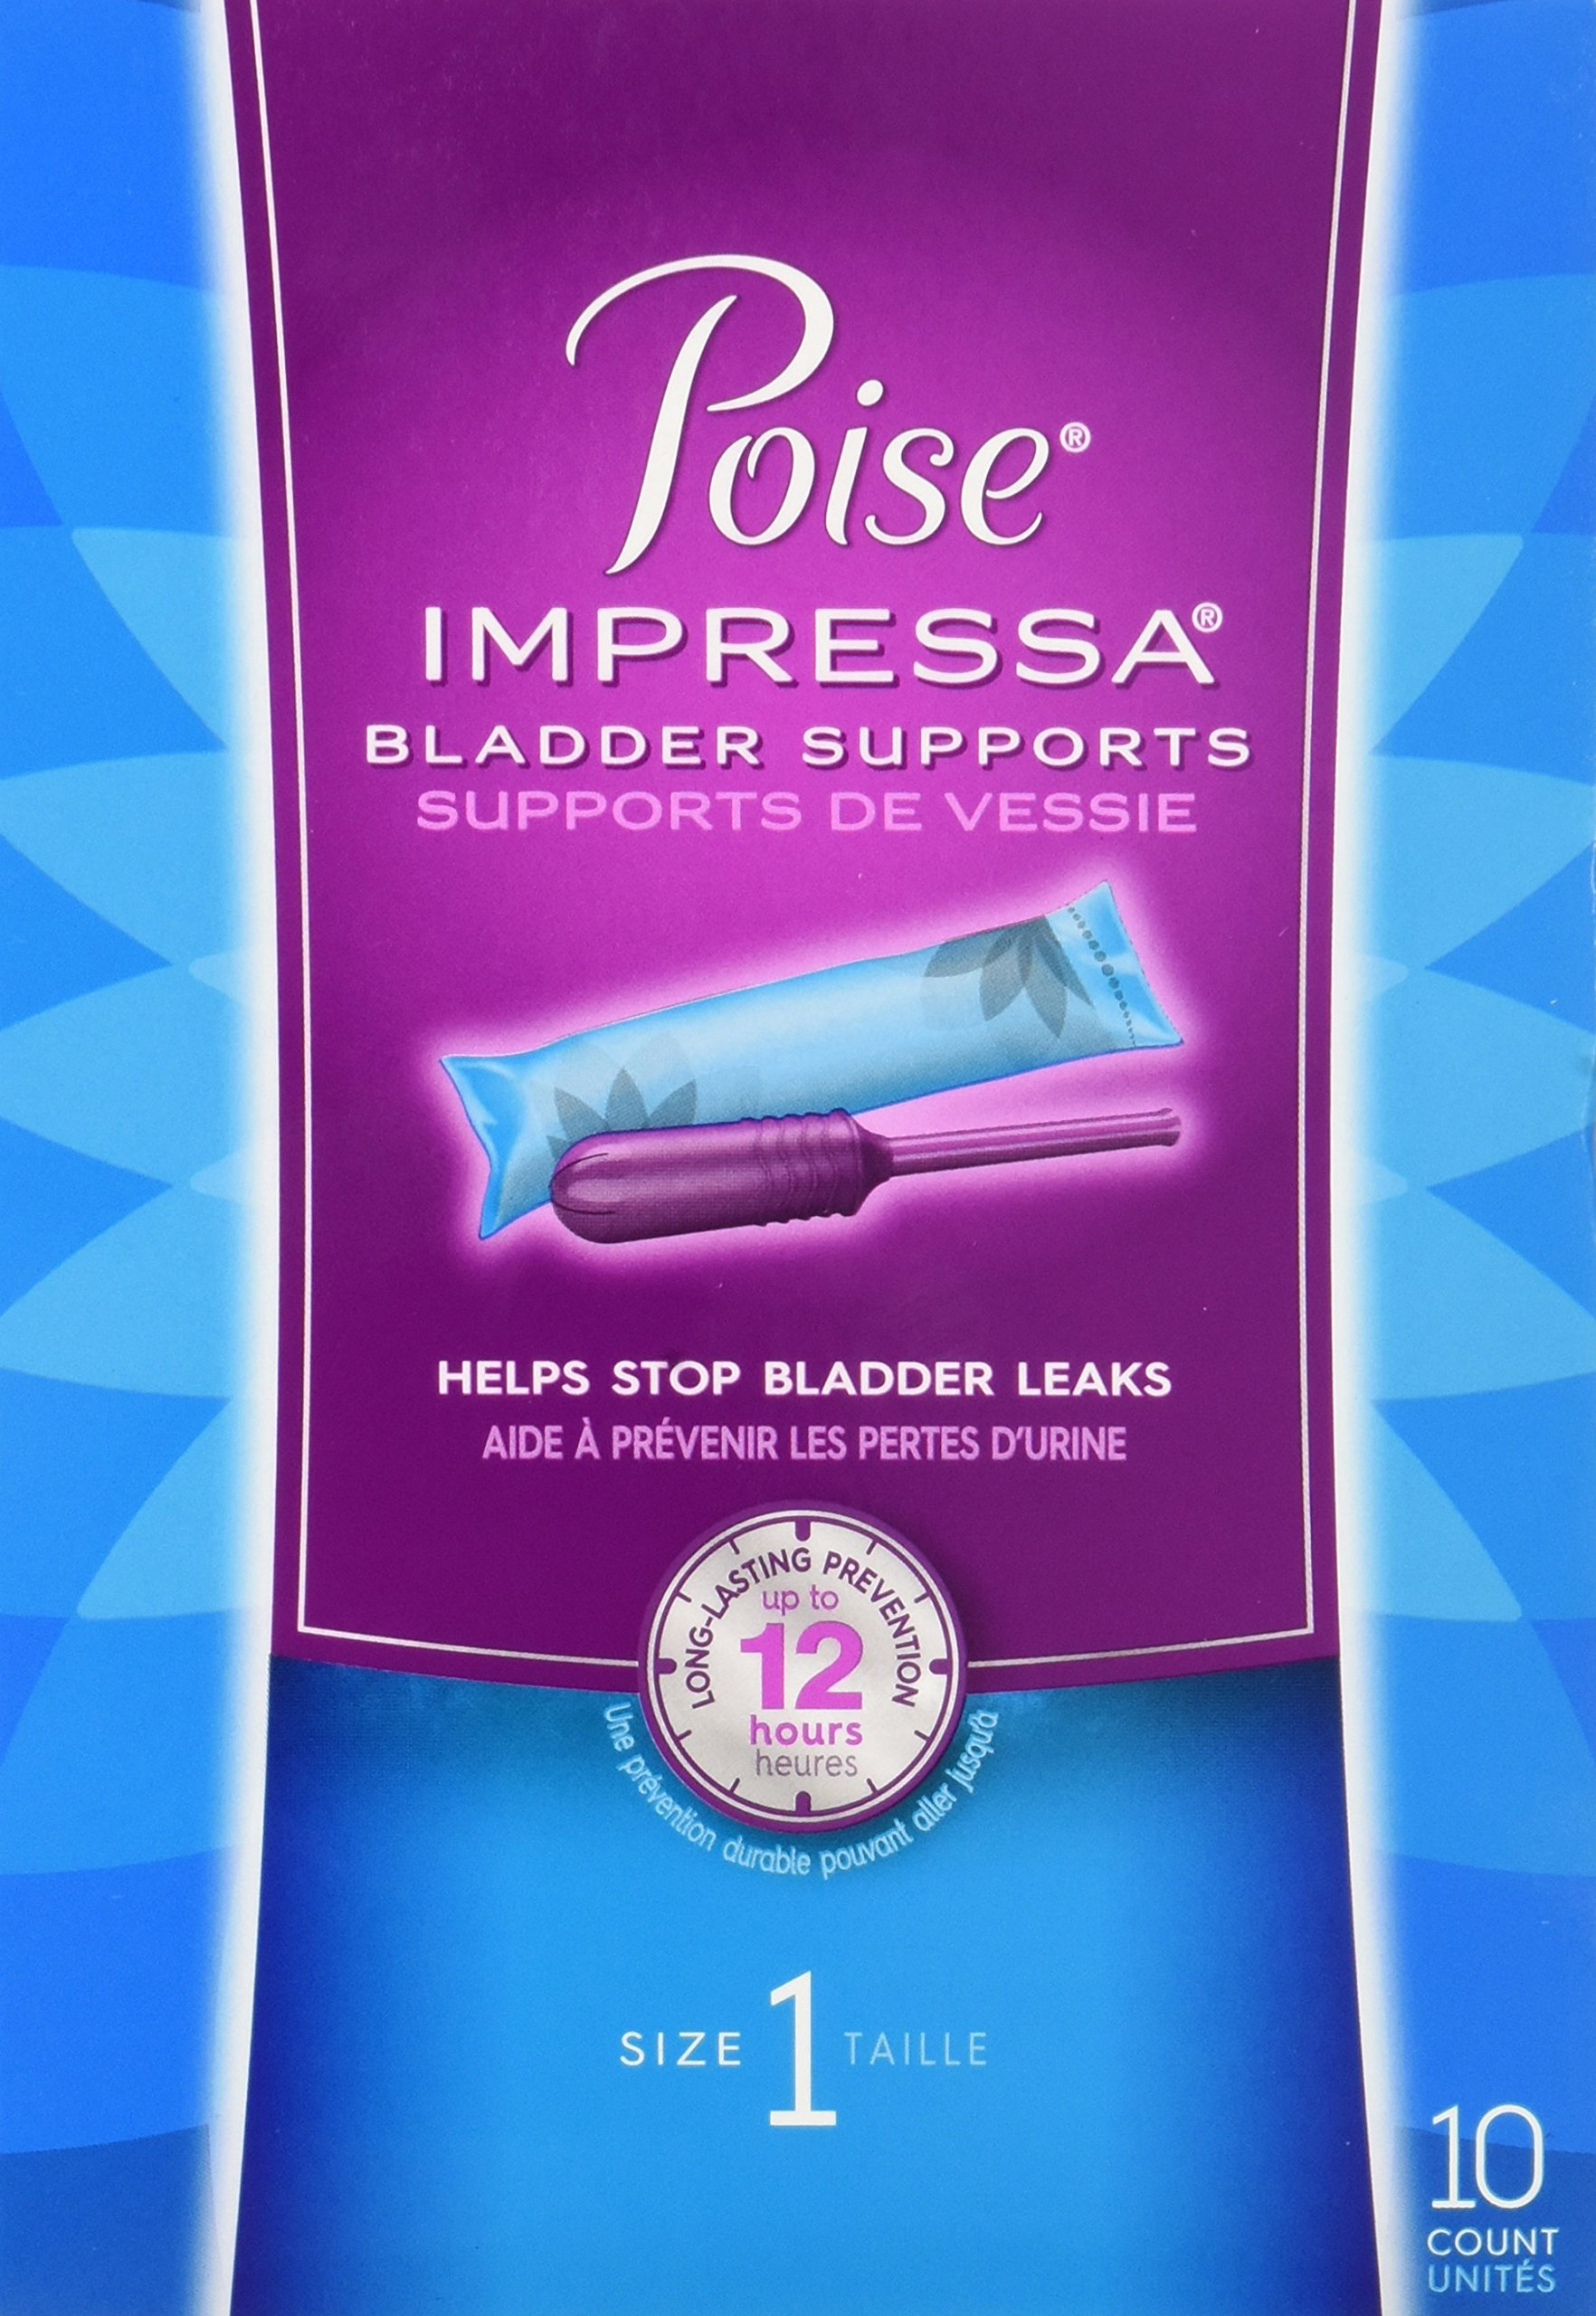 Poise Impressa Bladder Supports, Size 1, 10 Tampons (Pack of 2) by Poise Impressa